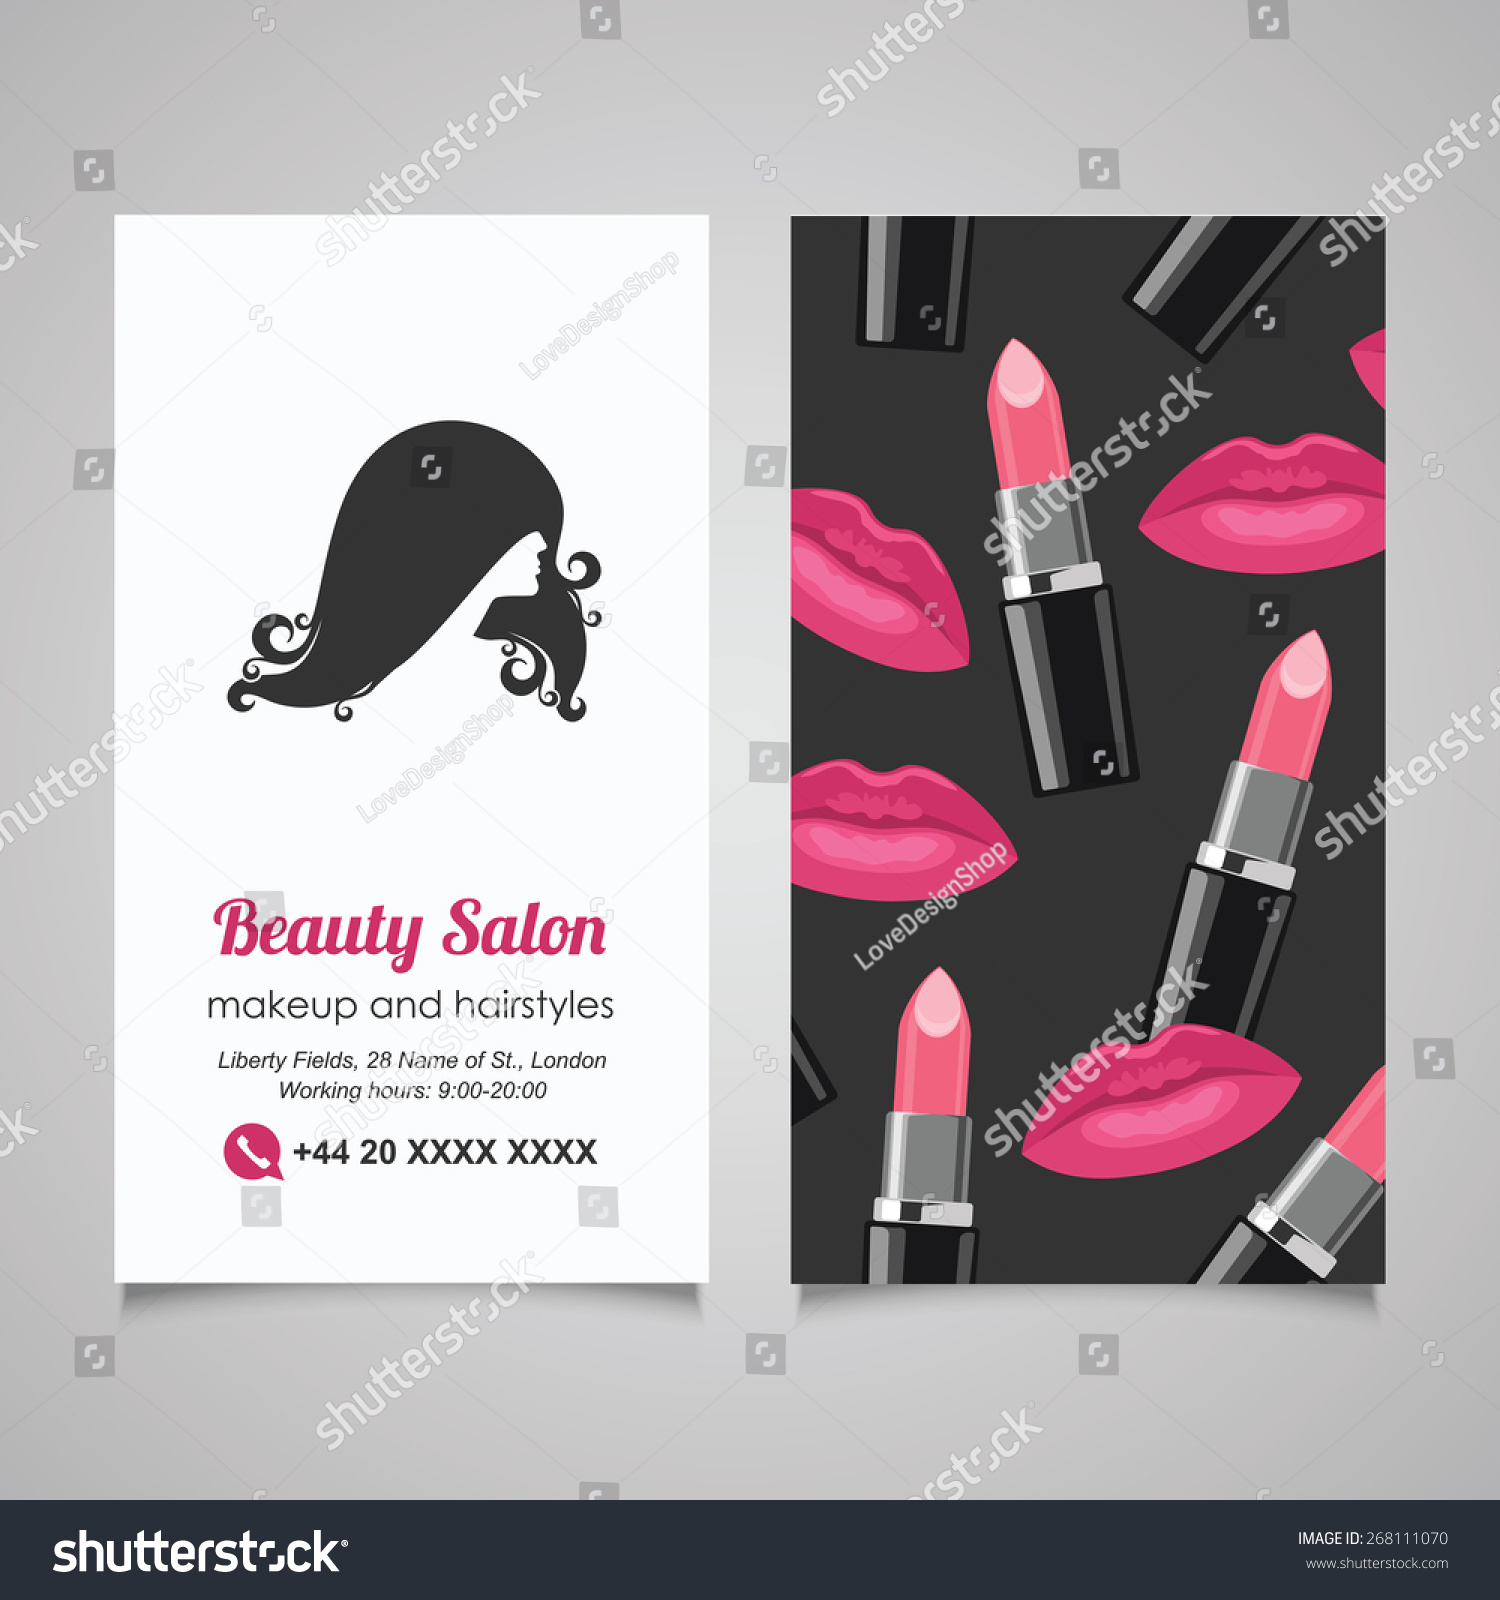 Lovely Images Of Hair Salon Business Cards - Business Cards and ...